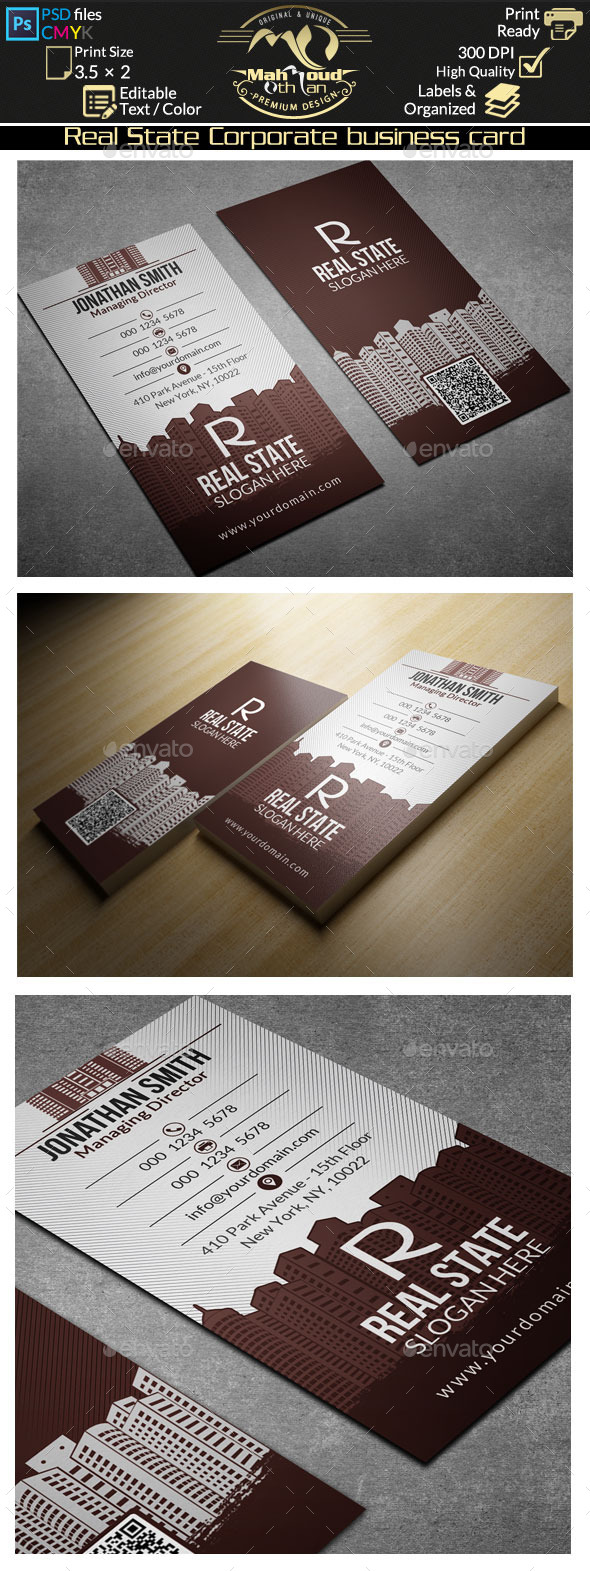 GraphicRiver Real Estate Corporate Business Card 10194668